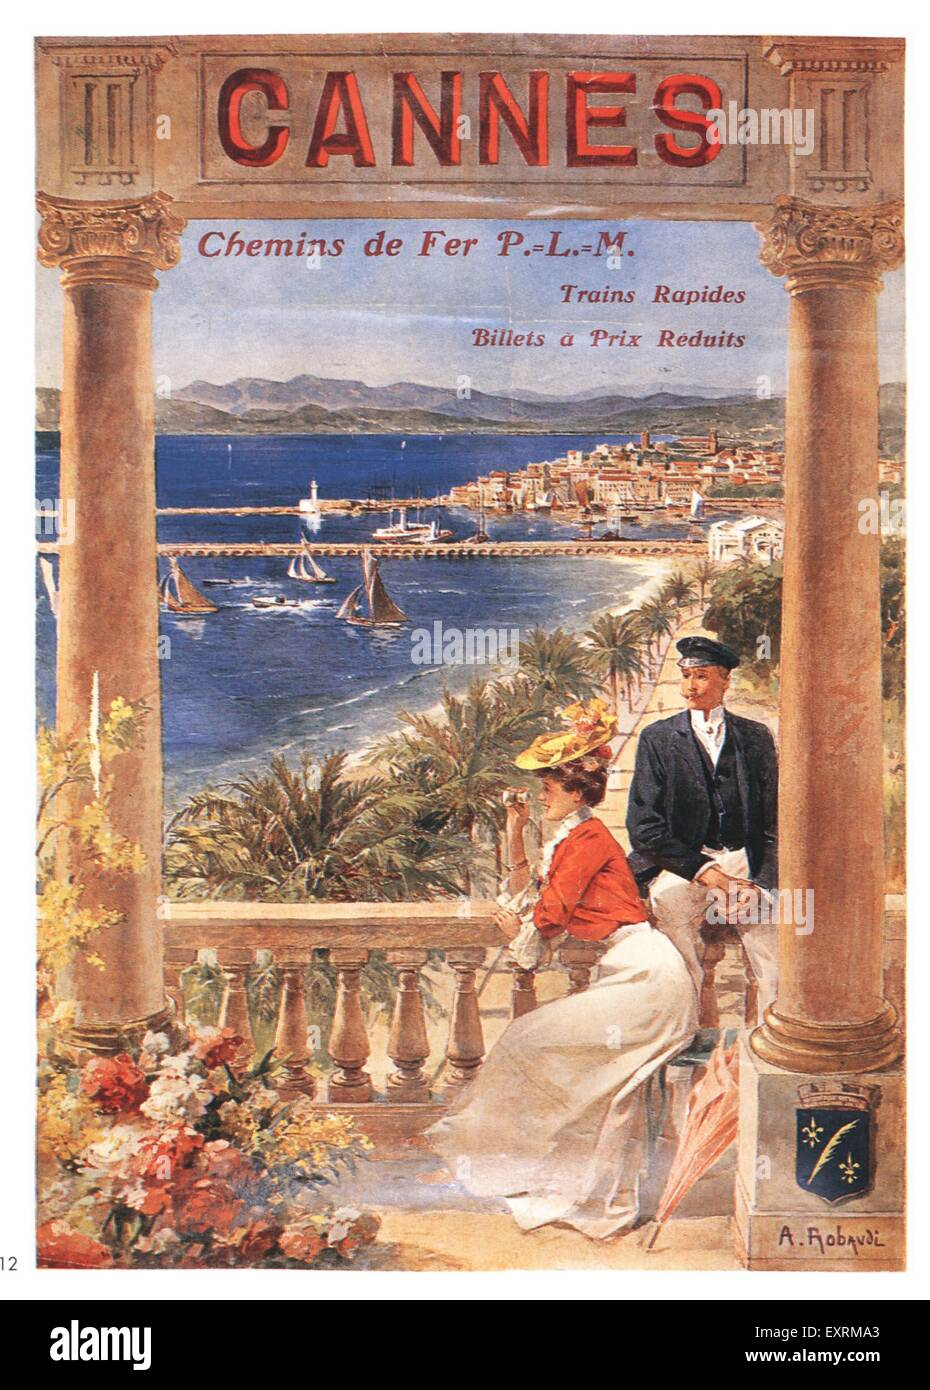 1910s France Cannes Poster - Stock Image